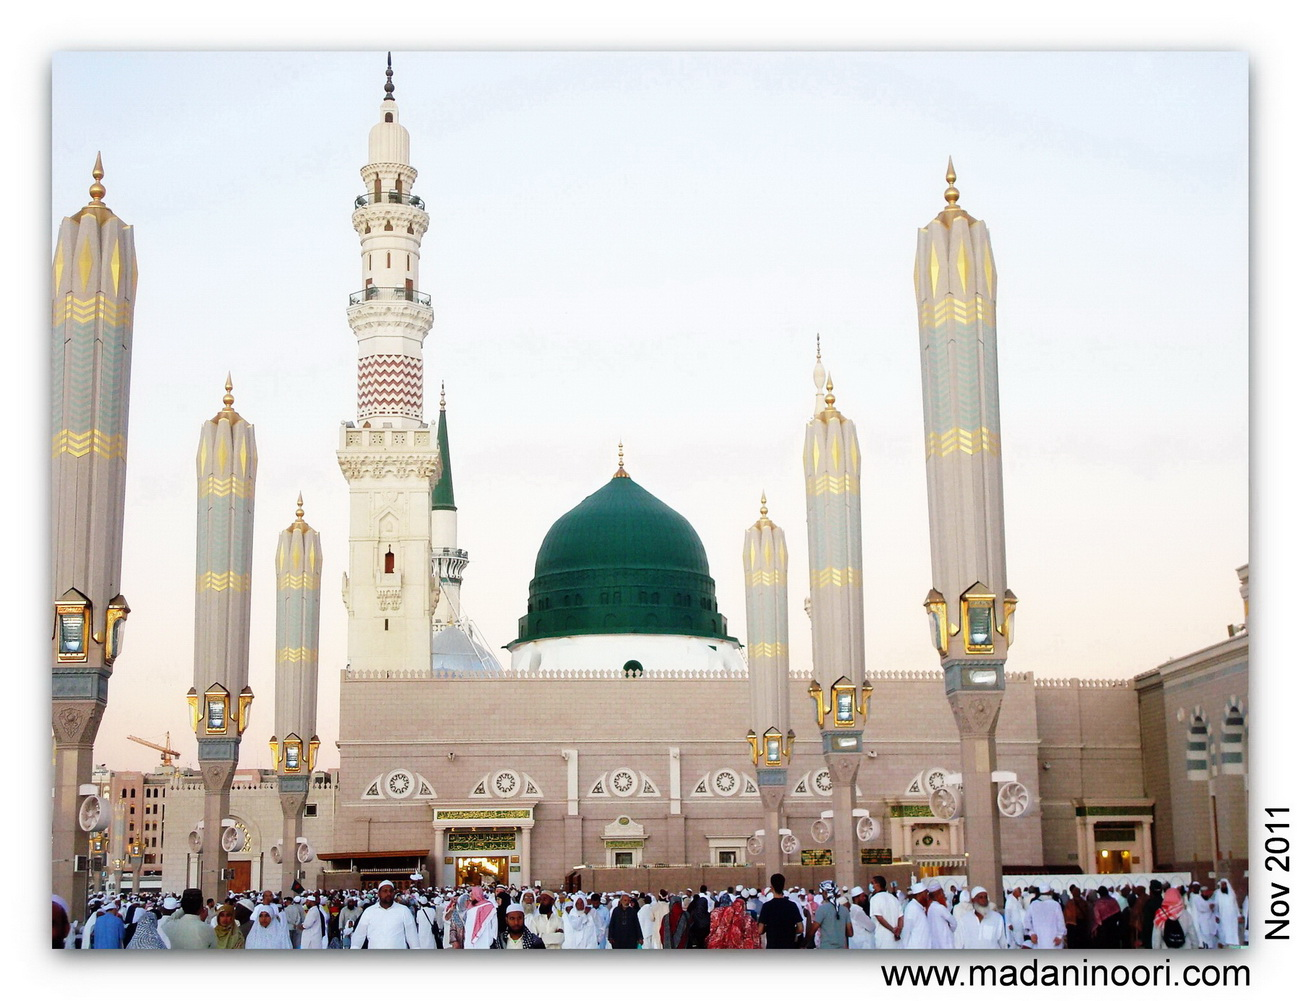 Http://www.islamun Pluspng.com/MasjidNabawi/Pictures_Collection_new/High_Resolution_Masjid_Nabawi_22.jpg - Masjid Nabawi PNG